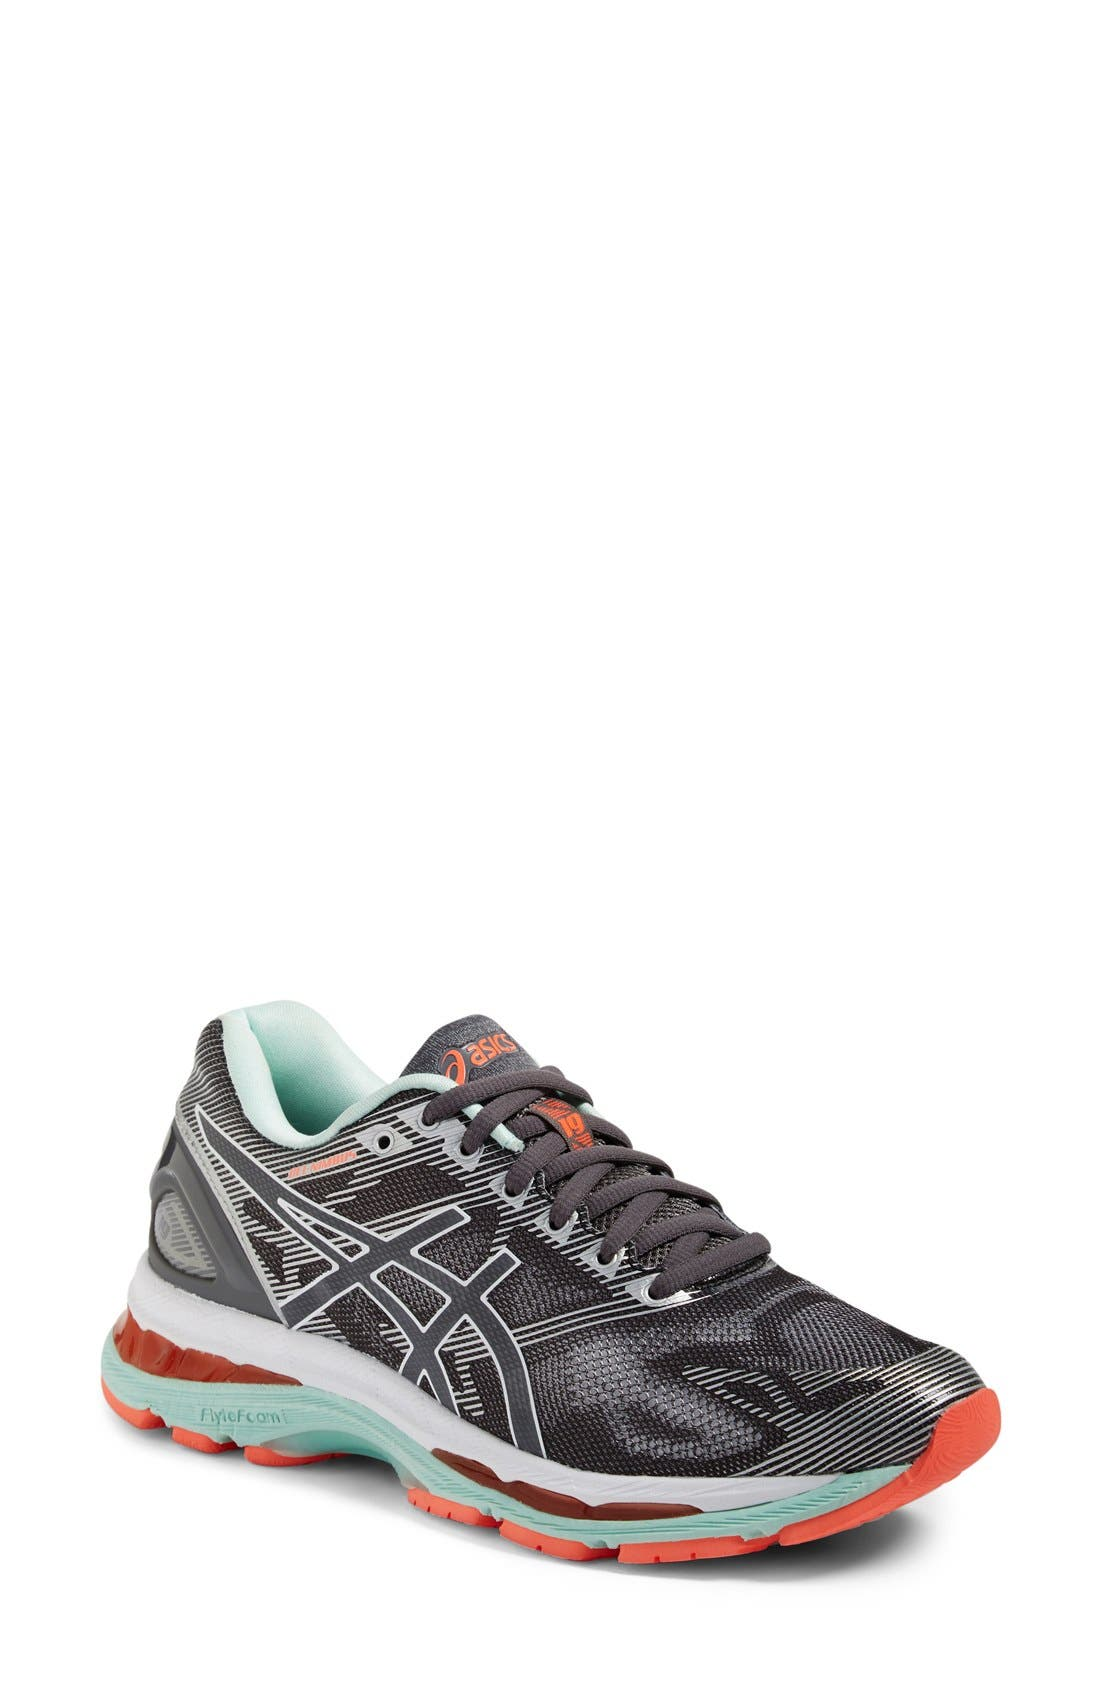 886ad306e20 Buy asics gel shoes womens   Up to OFF64% Discounted